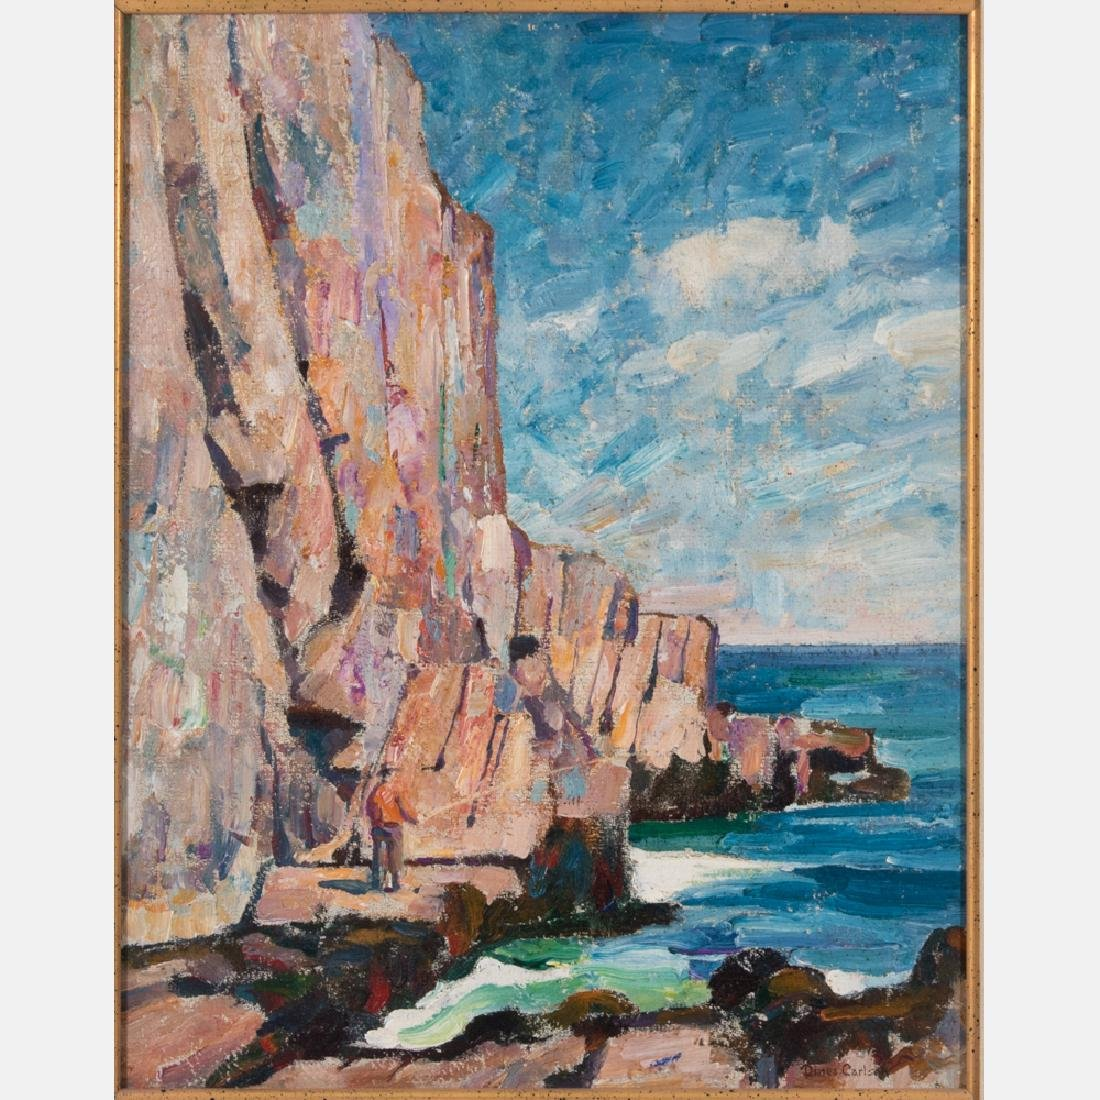 Dines Carlsen (1901-1966) Cliffs, Oil on masonite,